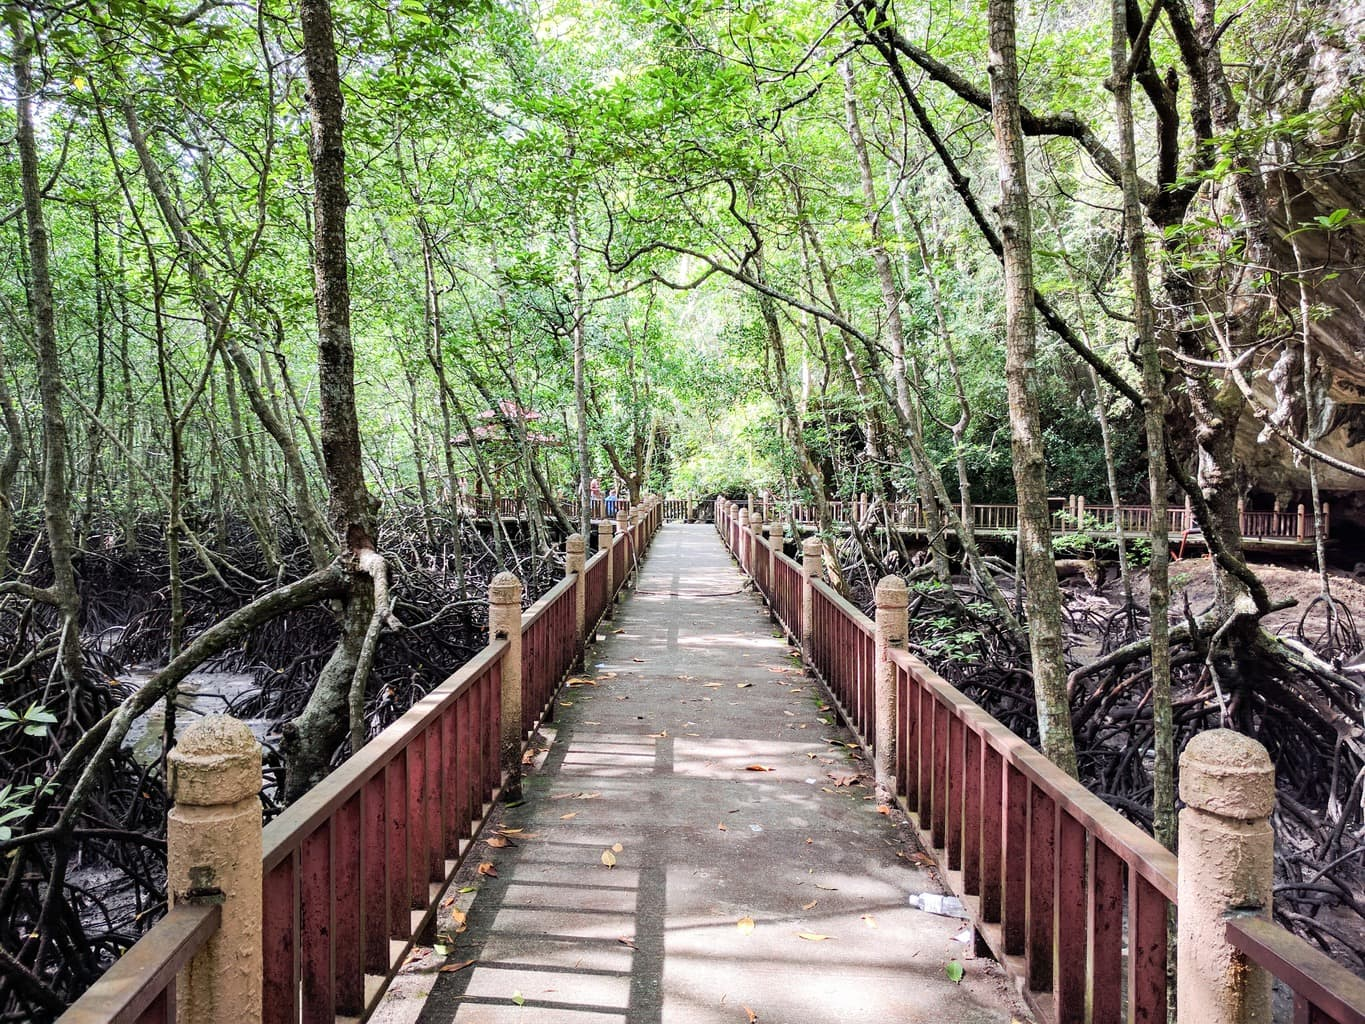 The mangroves of Kilim geoforest park